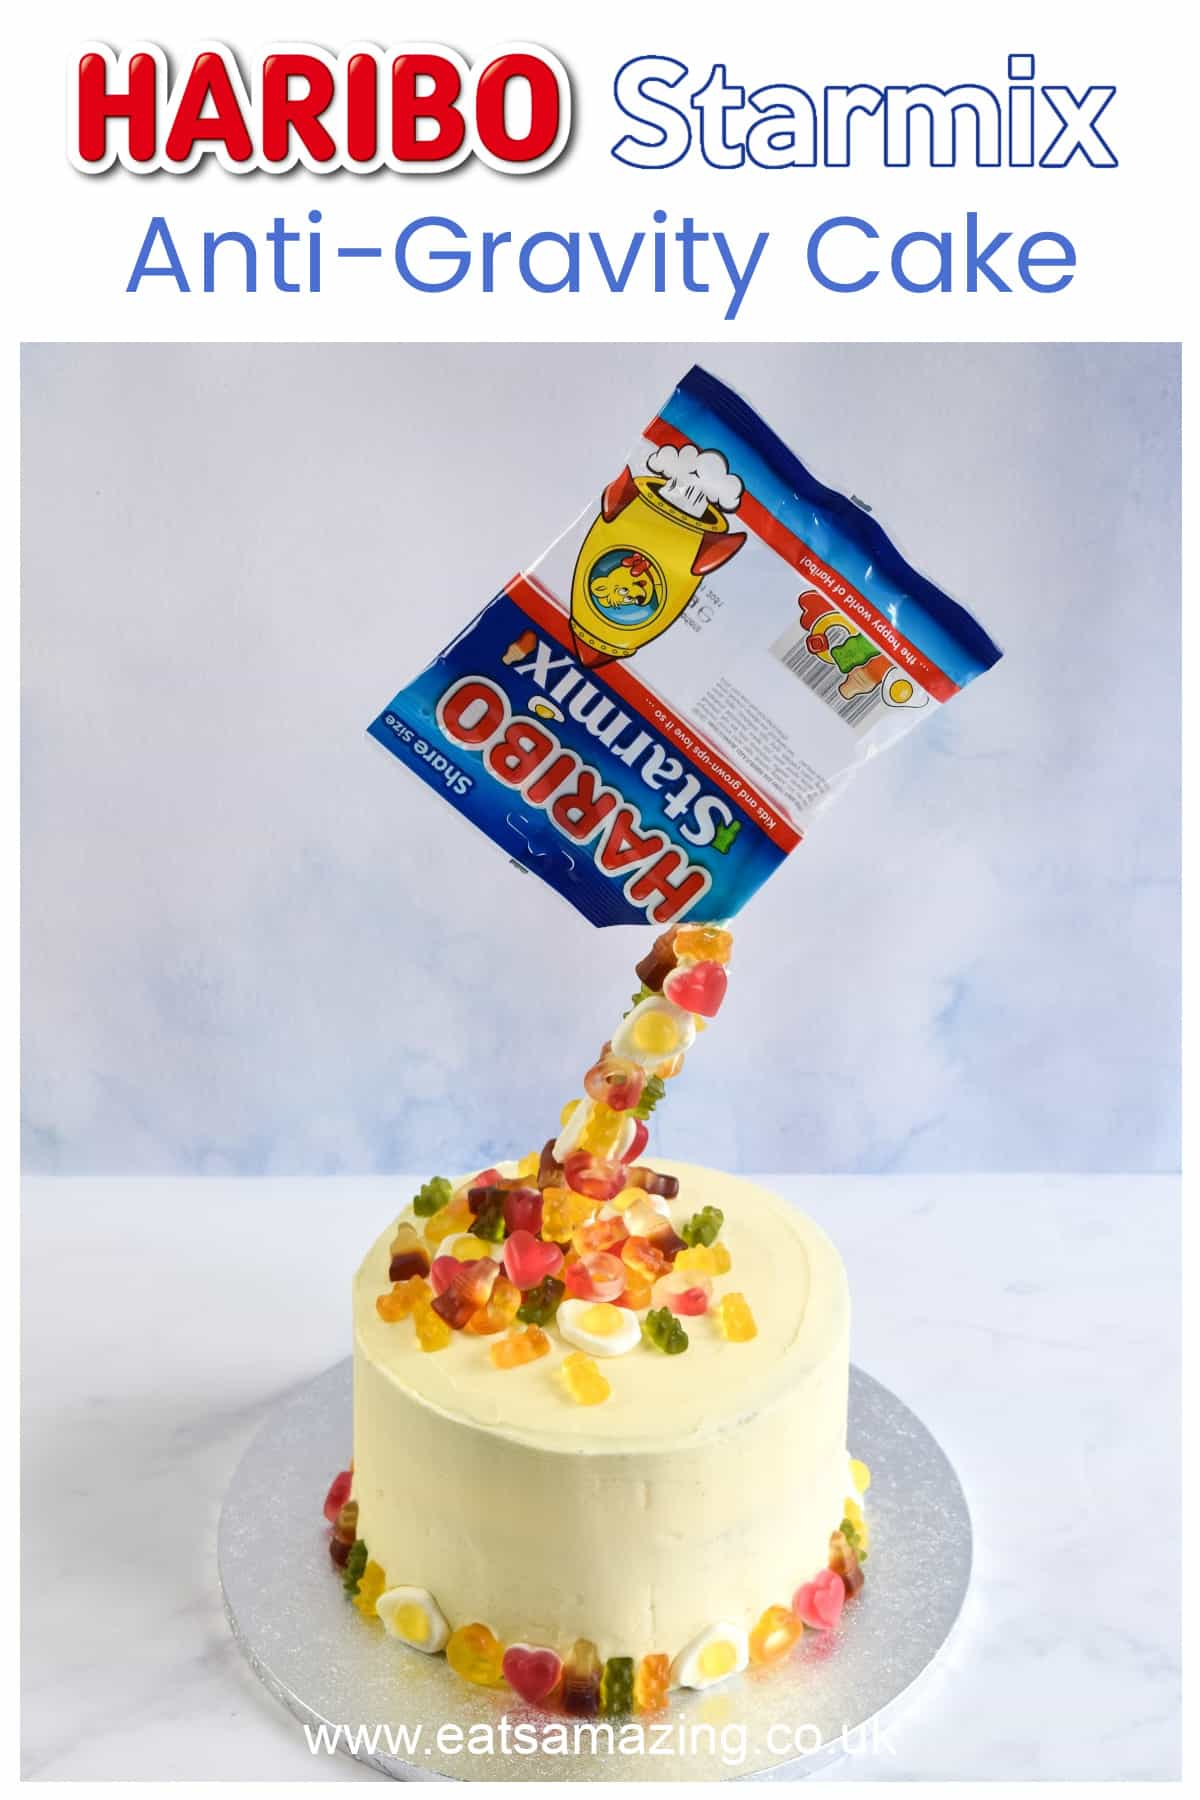 How to make an easy anti-gravity cake with HARIBO Starmix - Fun birthday cake idea for kids with recipe and video tutorial